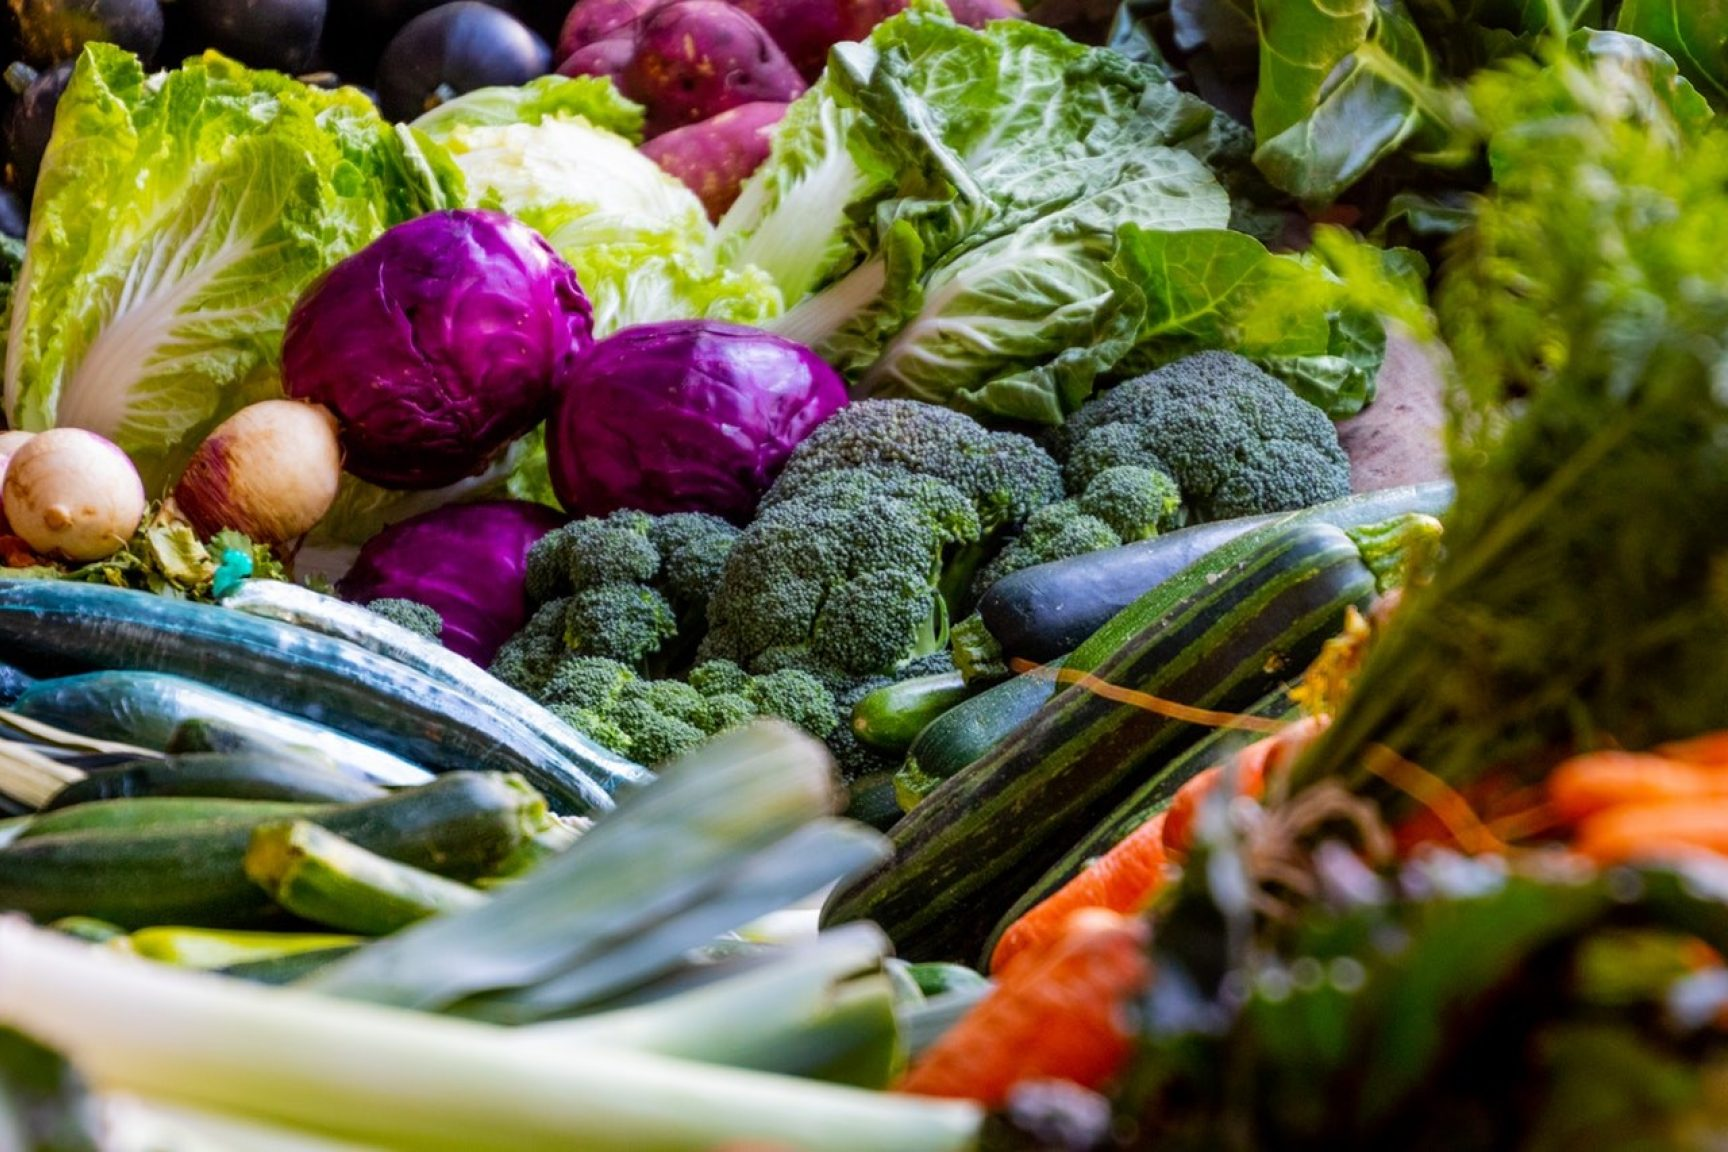 Lots of vegetables are spread out beautifully on a table, there is broccoli, cabbage, leeks, courgette, potatoes and more.